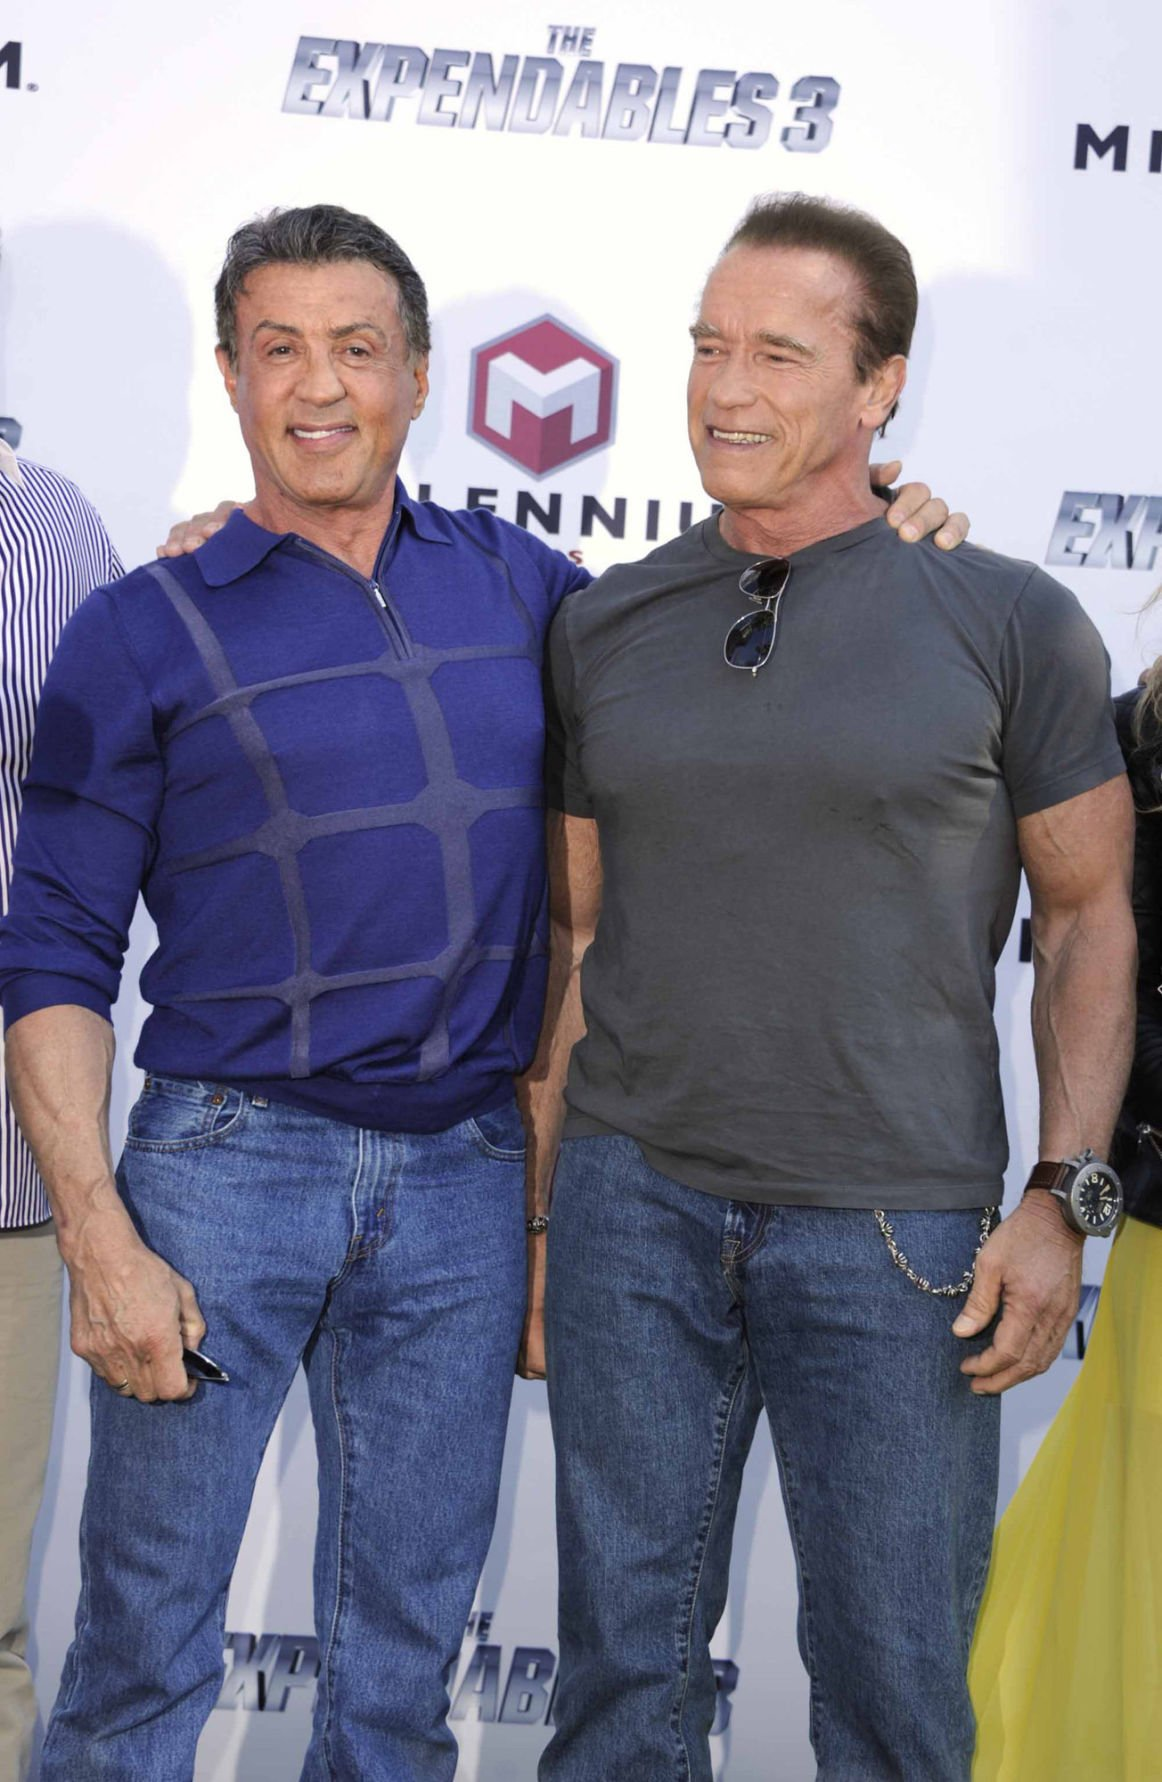 Sylvester Stallone and his 'Expendables 3' cast arrive in